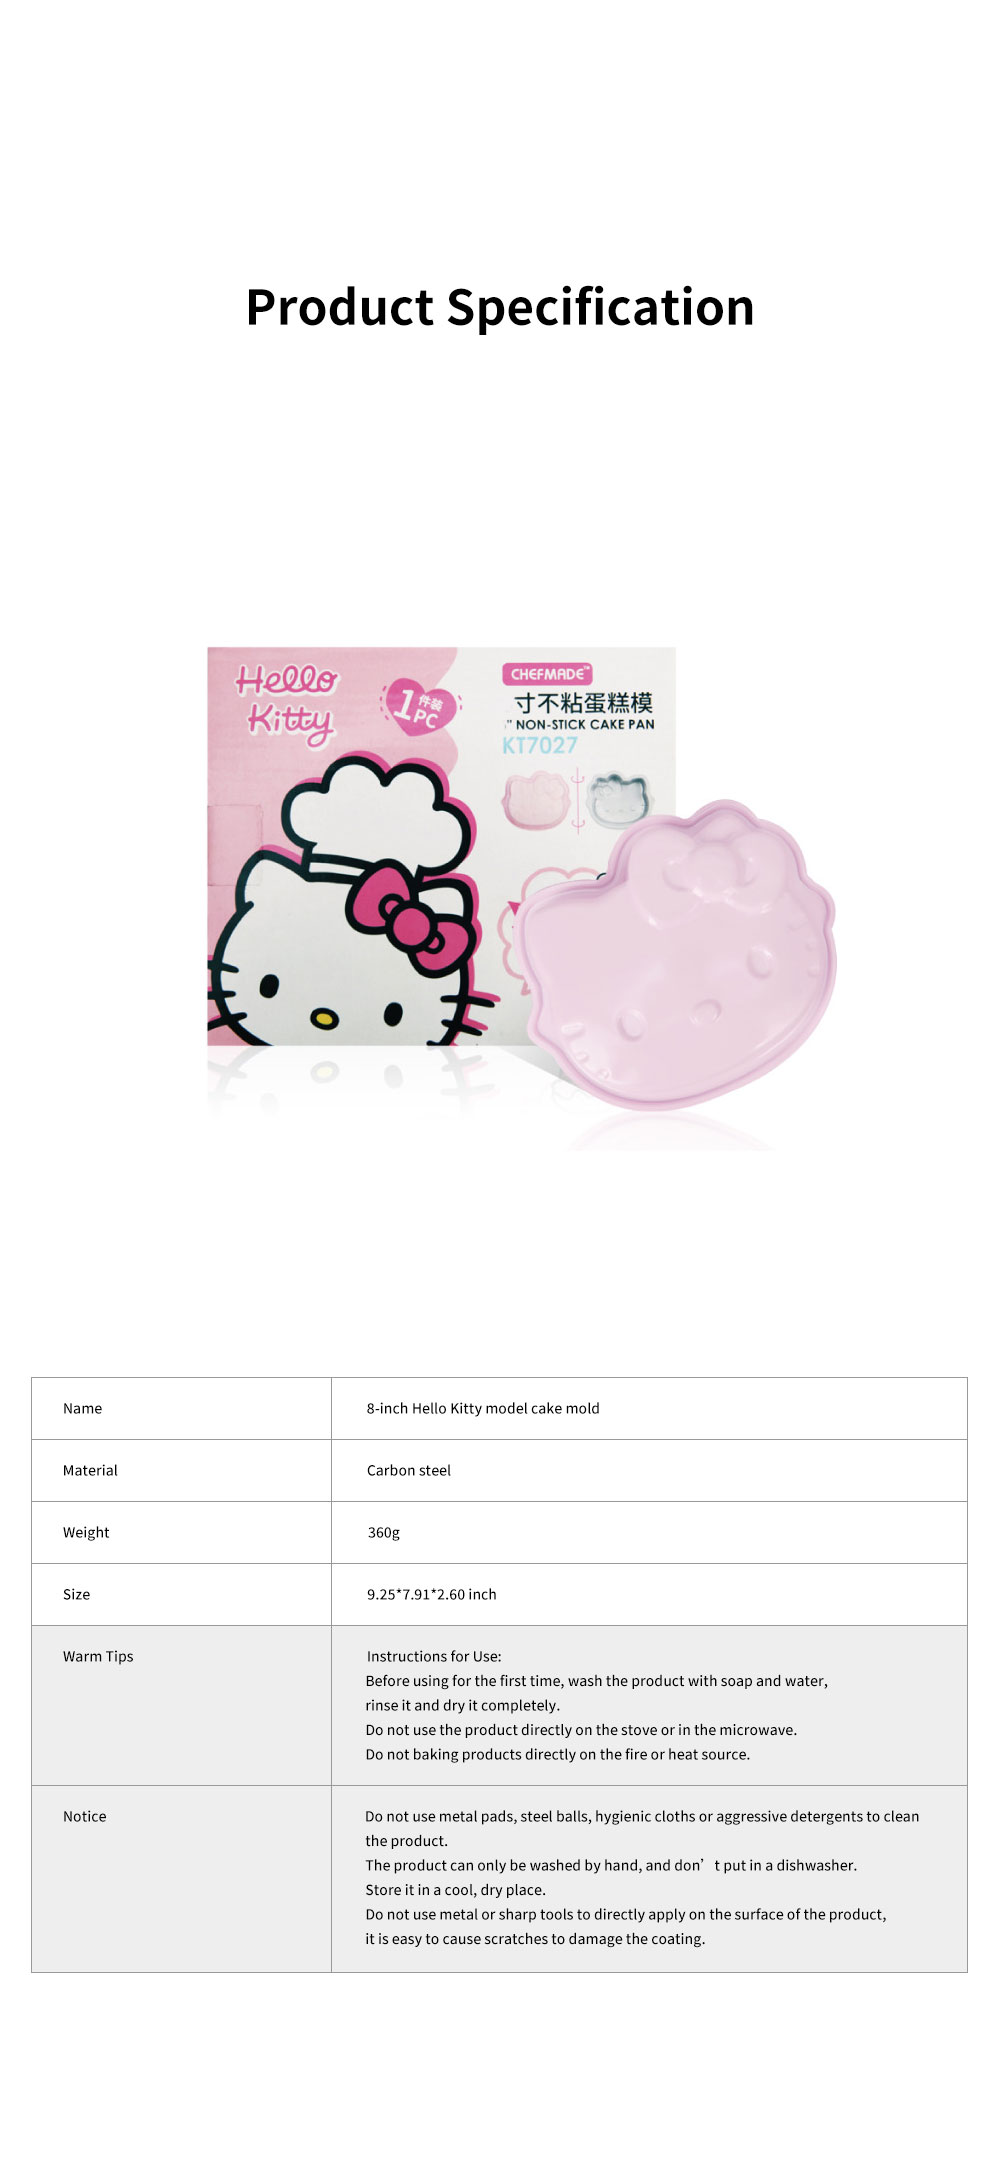 Cute Kitty Model Heat-resistance Carbon Steel 8-inch Cake Jelly Mold Kitchen Baking Assistant Stool 5